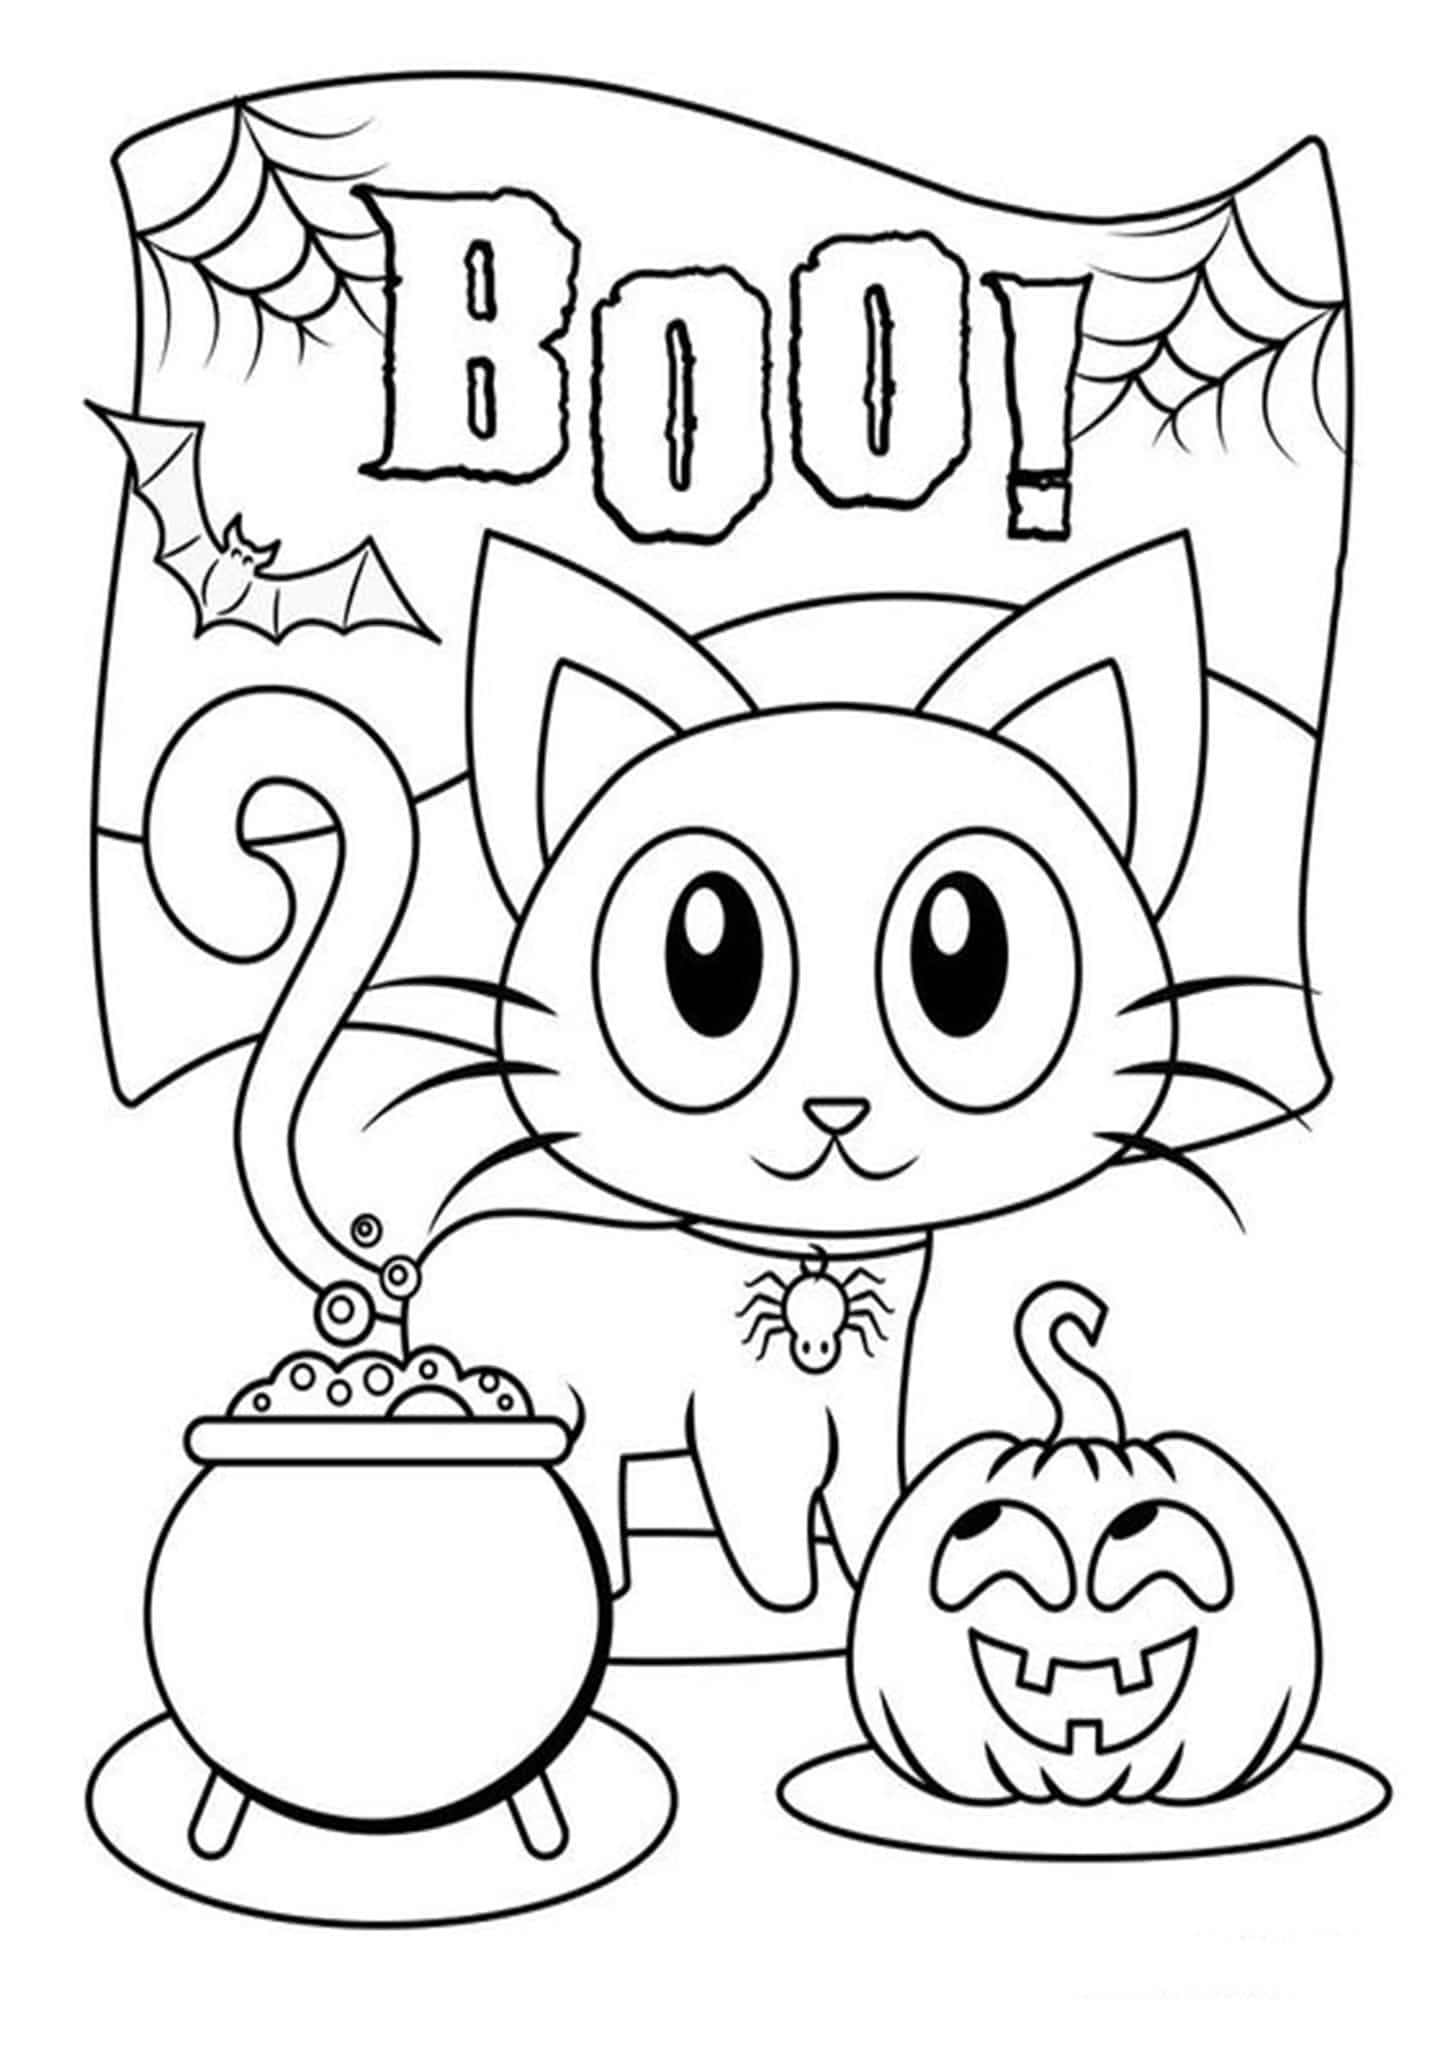 cute colouring pages for kids free easy to print cute coloring pages tulamama colouring pages for cute kids